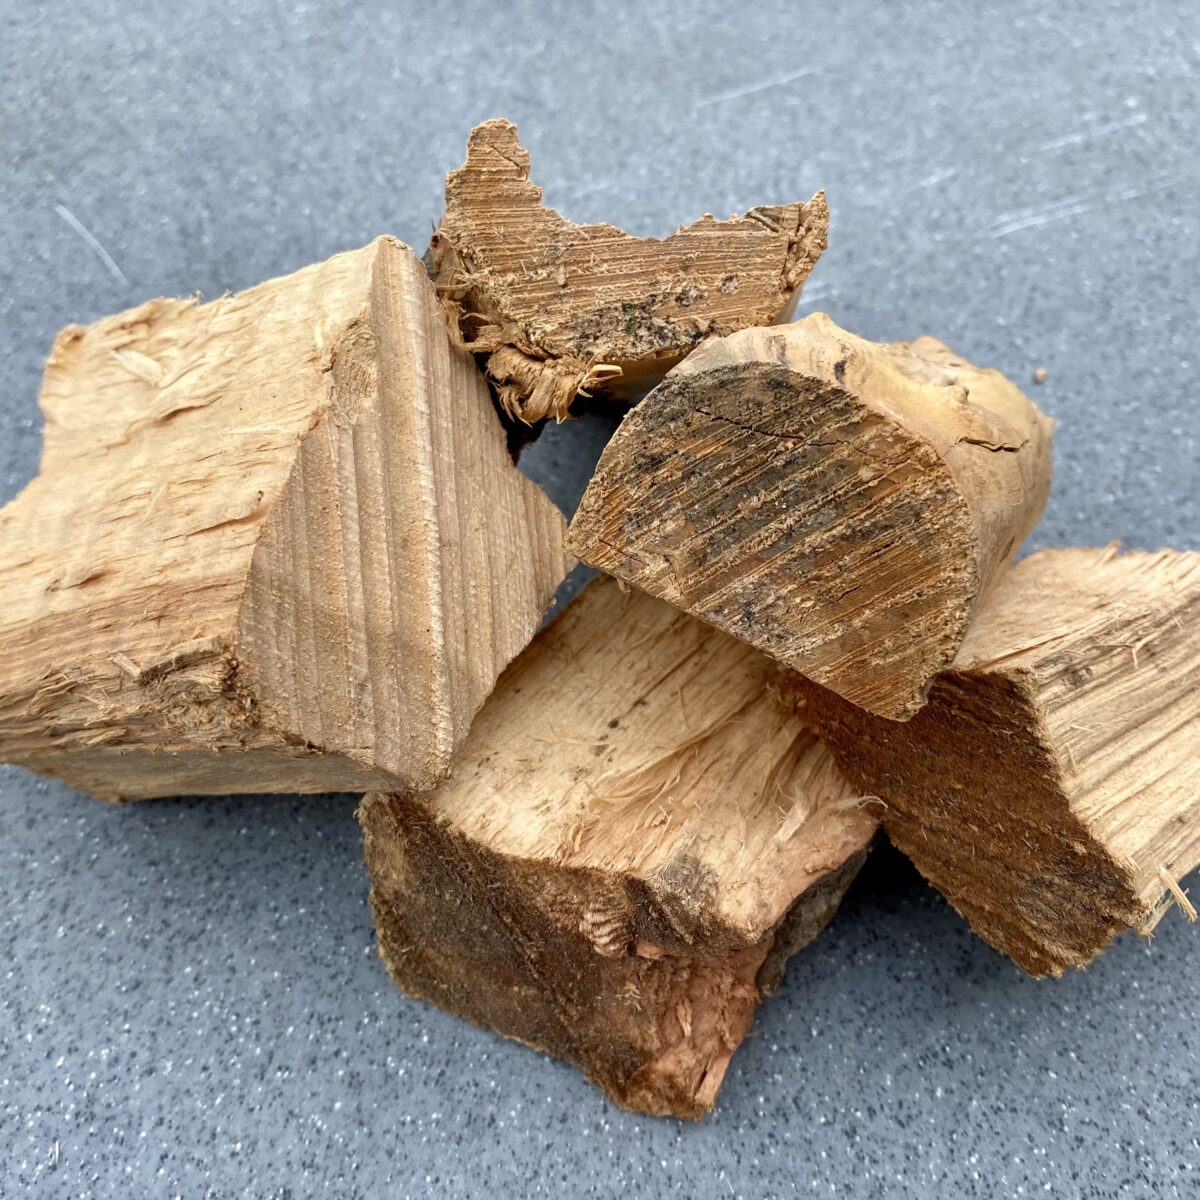 Five pieces of smoke wood chunks stacked on each other showing the size of one to two inches for each piece.